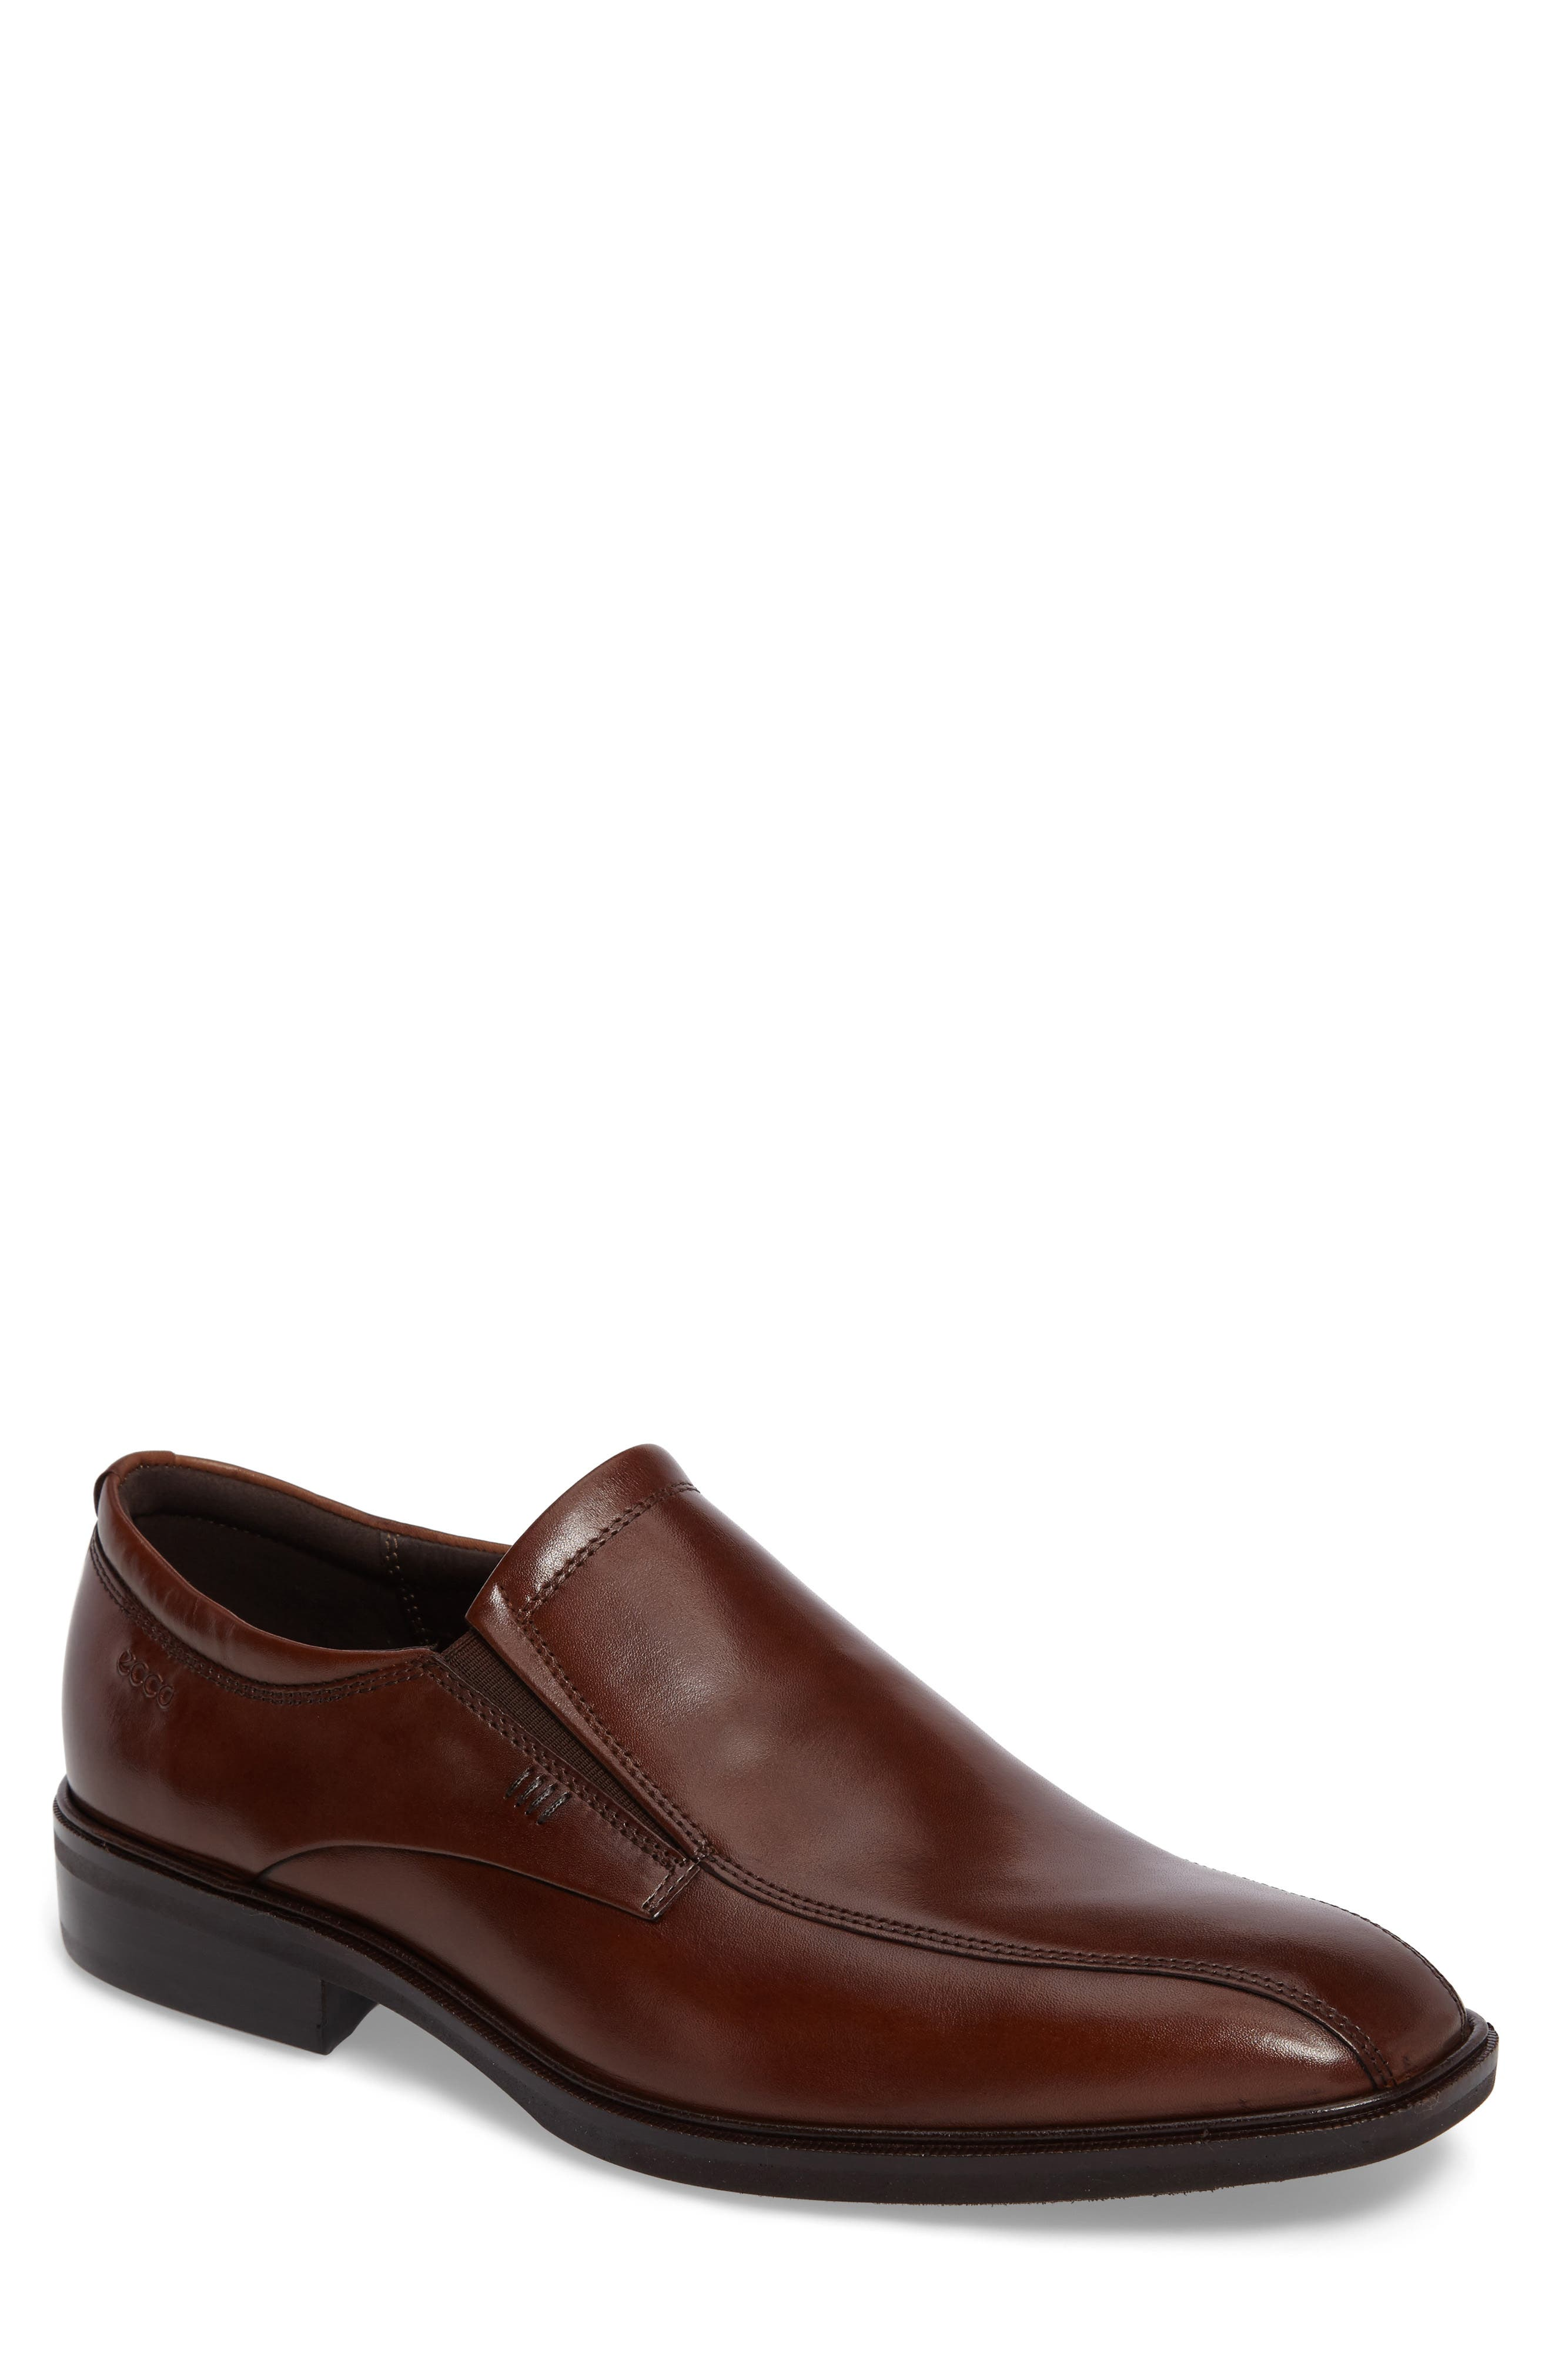 'Illinois' Loafer,                             Main thumbnail 1, color,                             WALNUT LEATHER